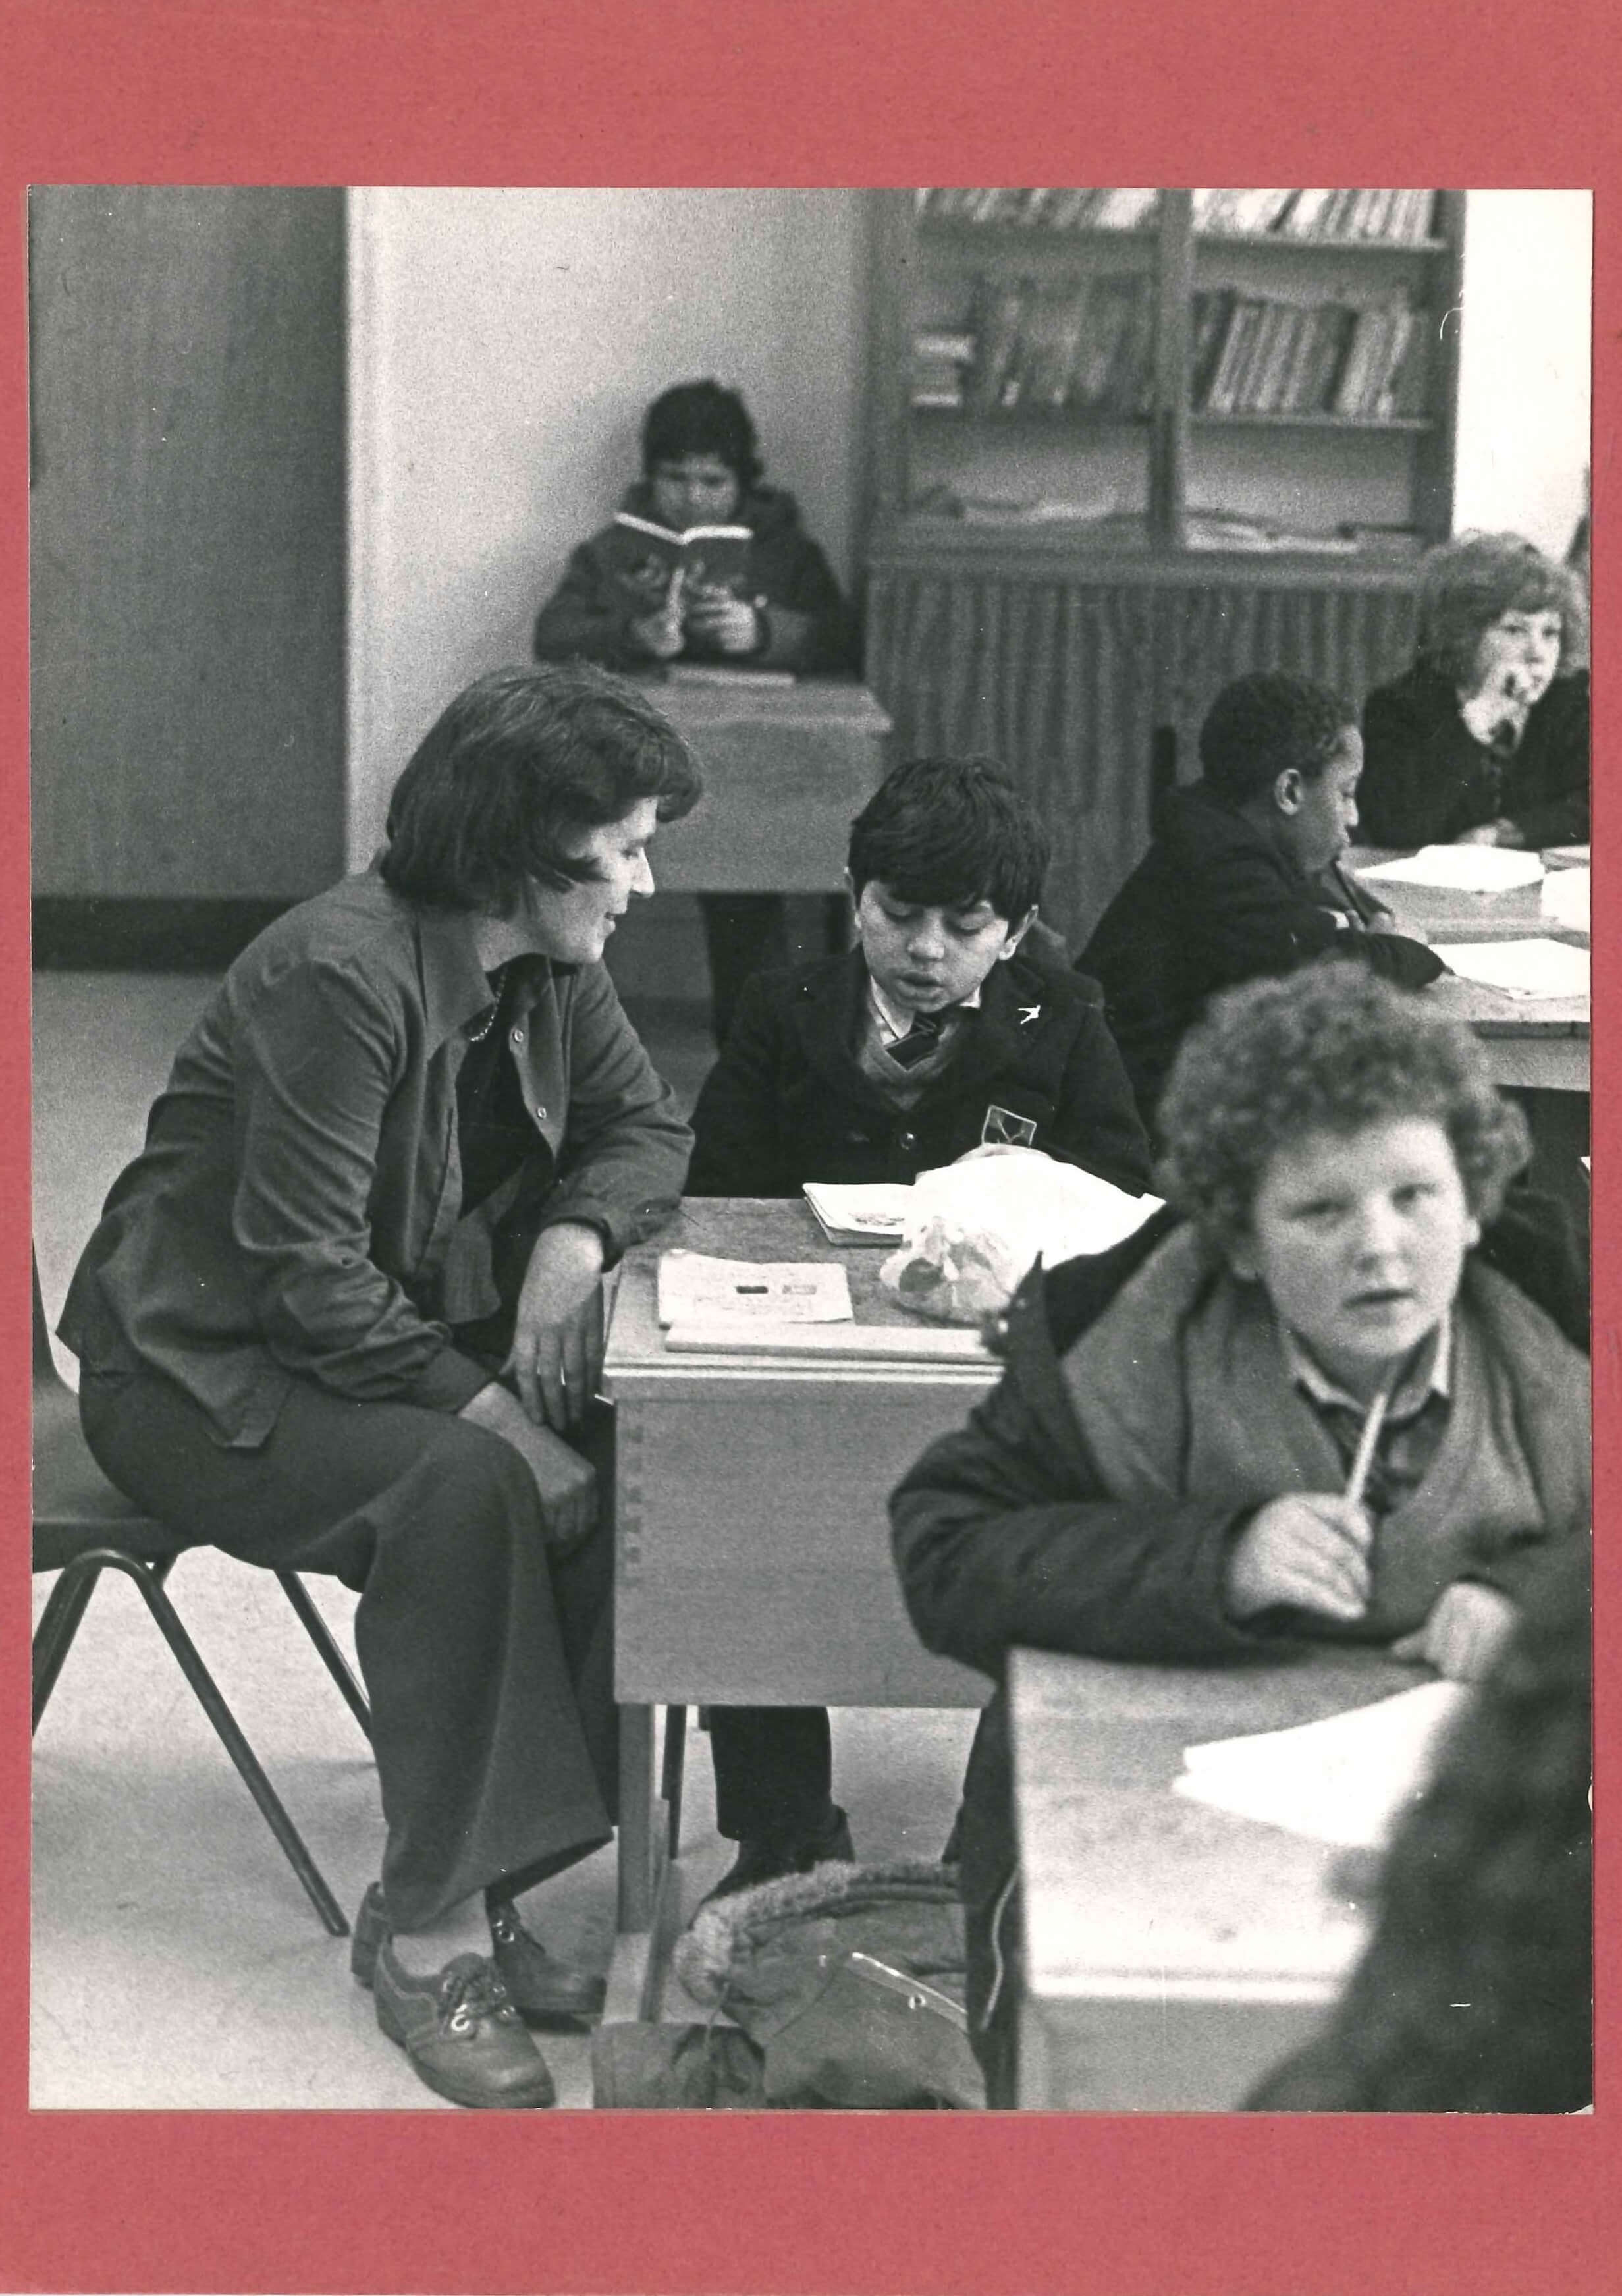 Joan Goody is shown sitting in a classroom at the desk of a primary school child, helping him to read a book. Other children are shown reading and writing.